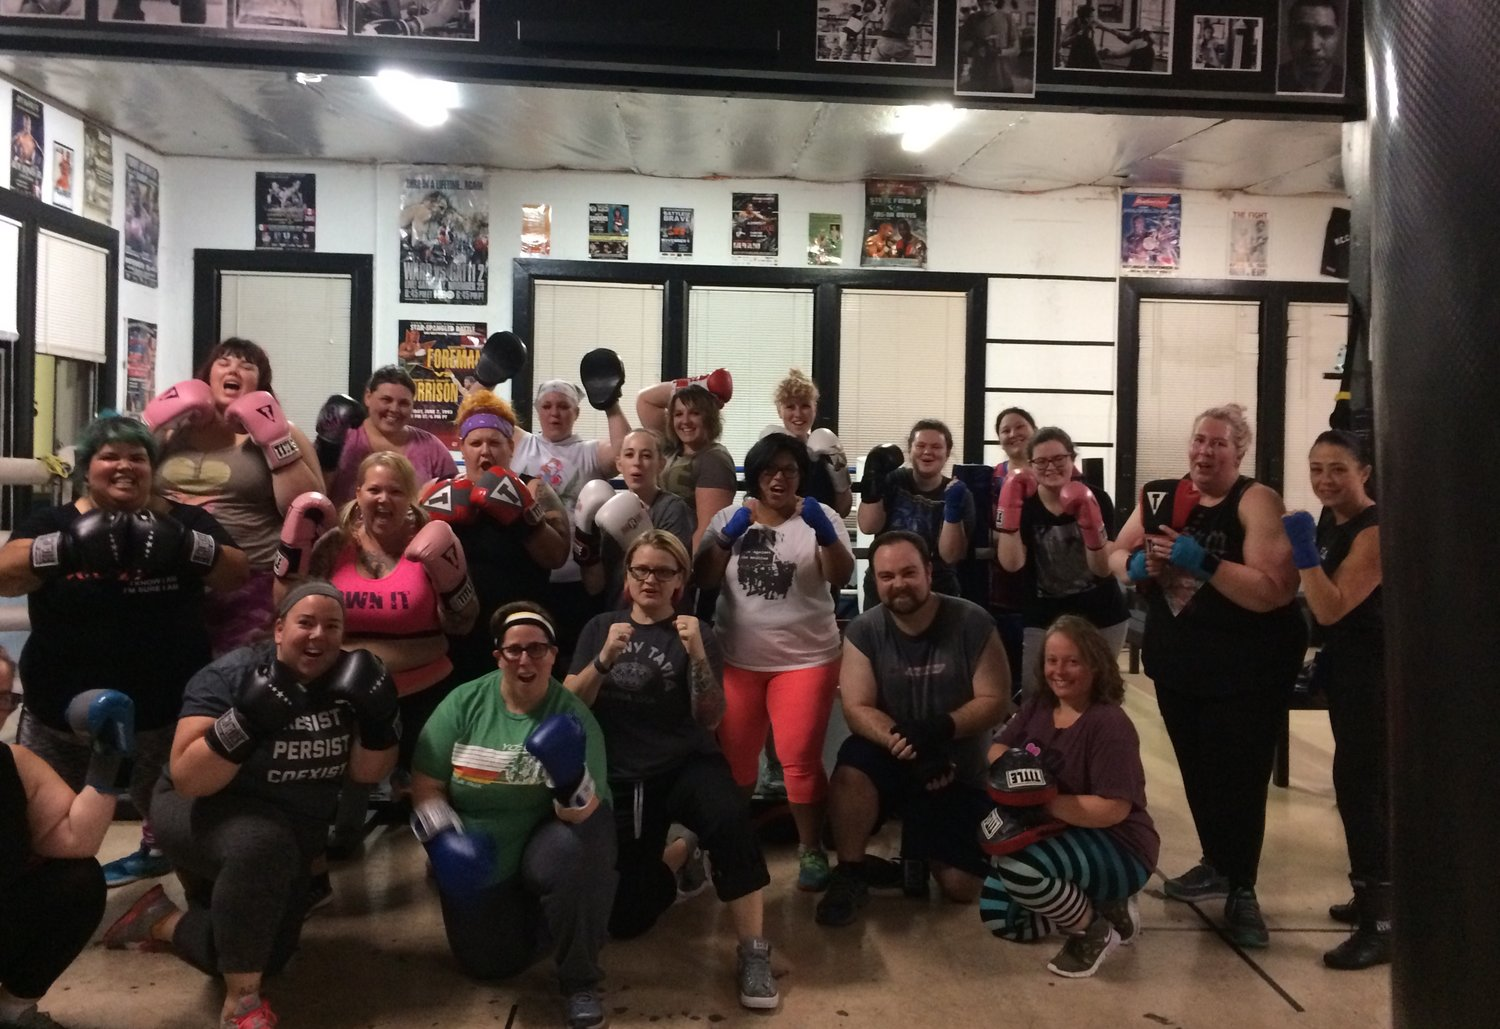 McConnell's Boxing Academy - In 2012, Molly